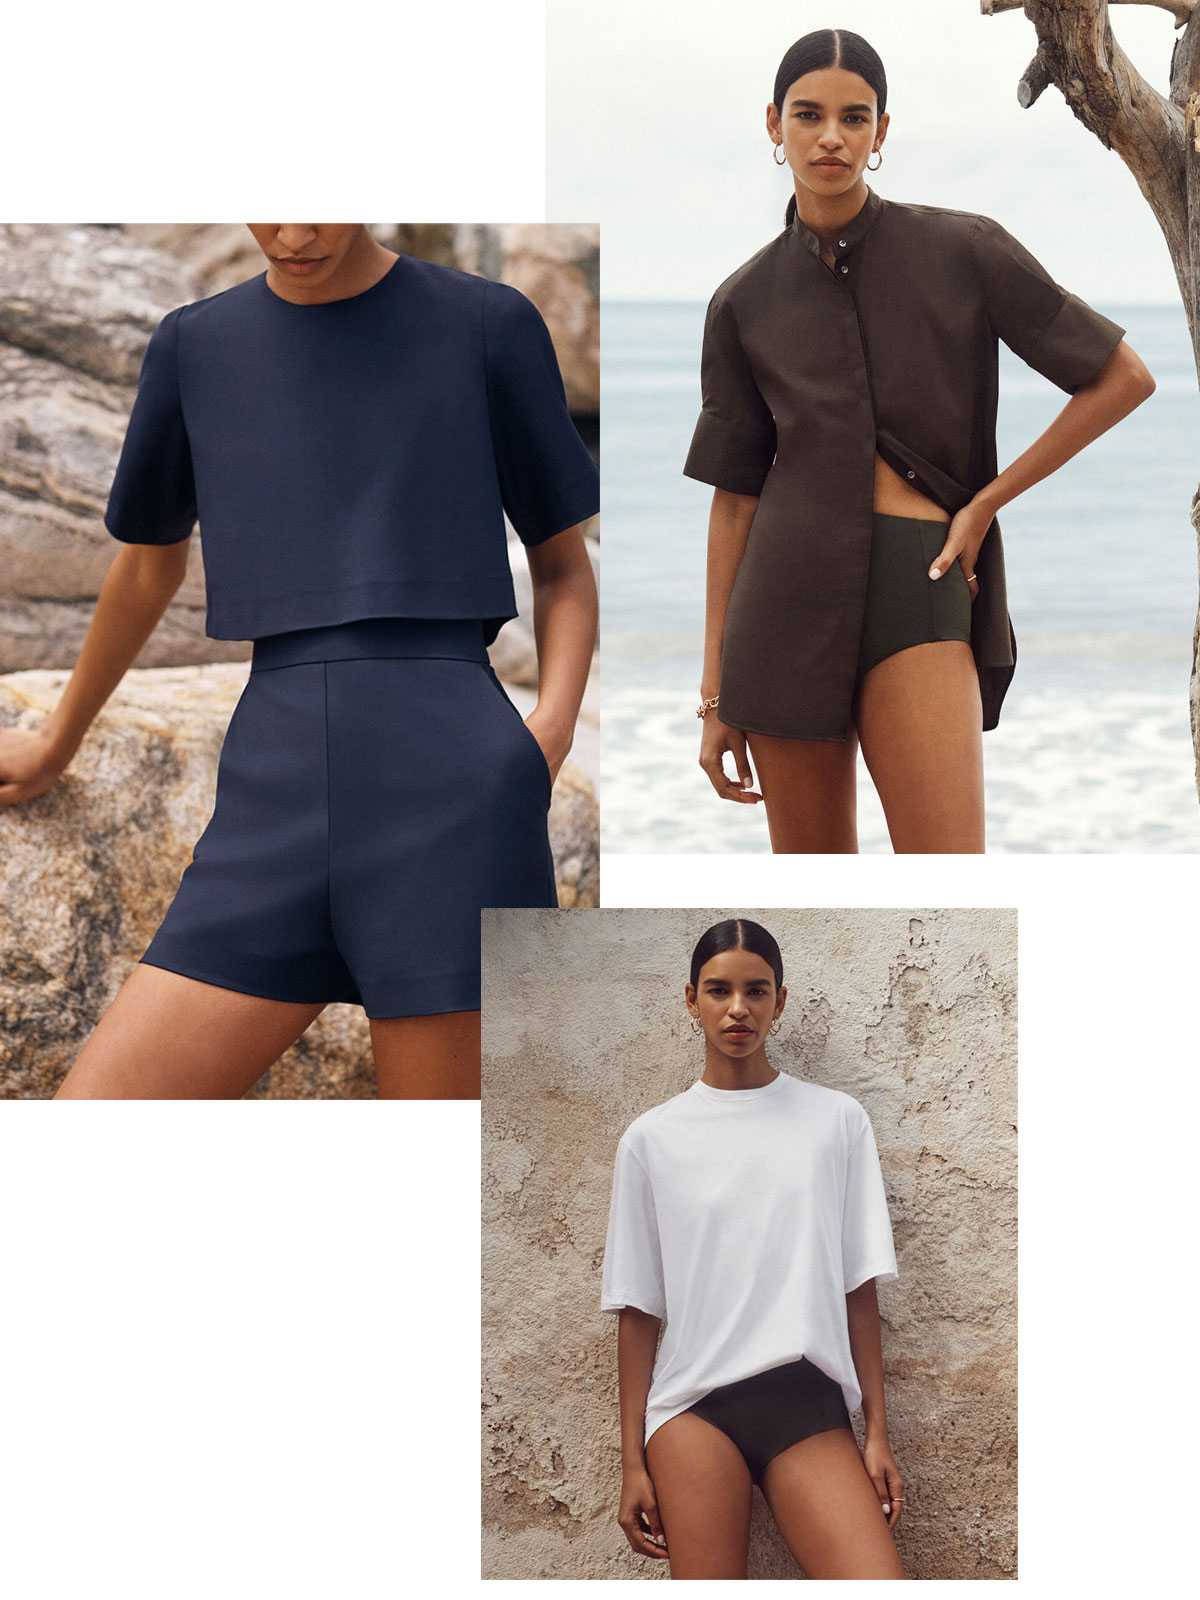 5d9d48b0835e When GOOP launched G. Label in 2016 the clothes were not my speed. Over  time, the designs got better but many pieces were derivative of items I  already ...